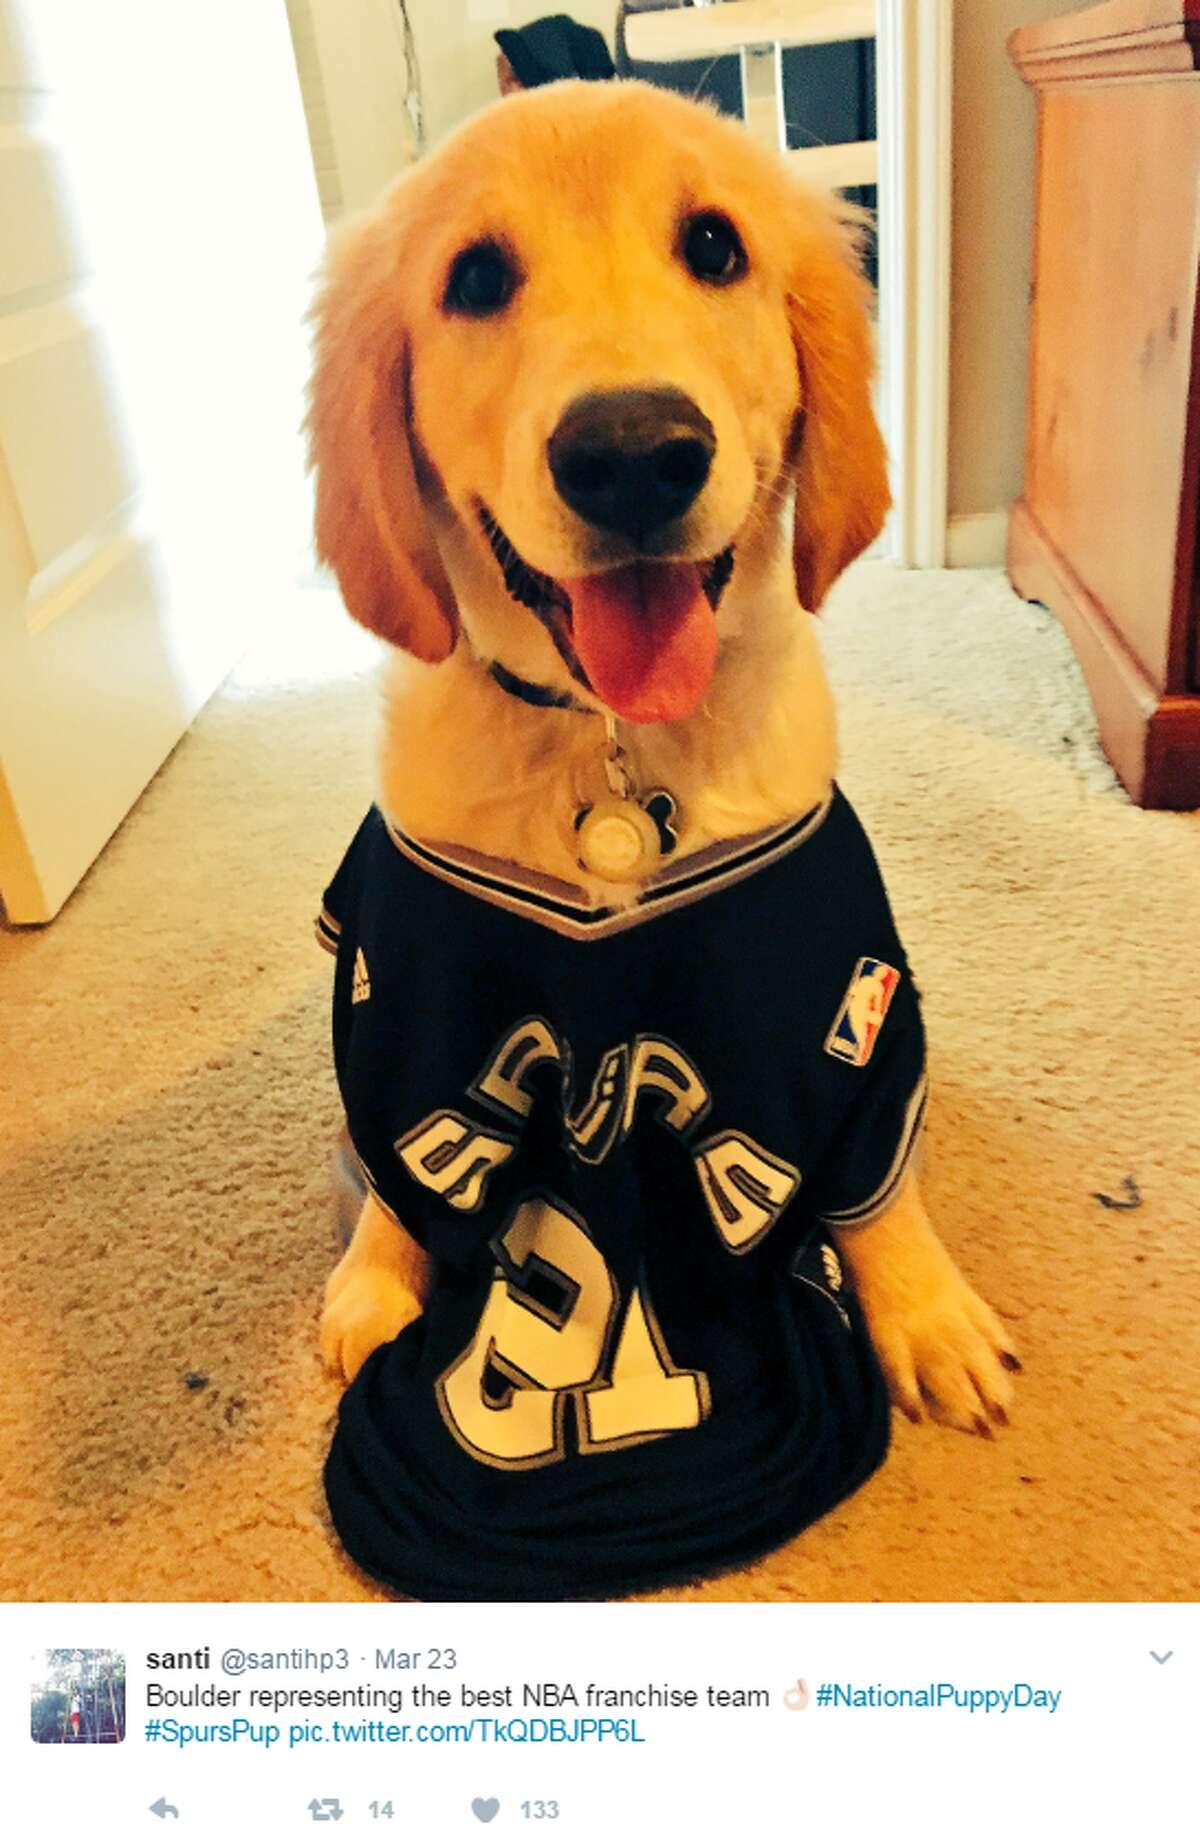 @santihp3: Boulder representing the best NBA franchise team #NationalPuppyDay